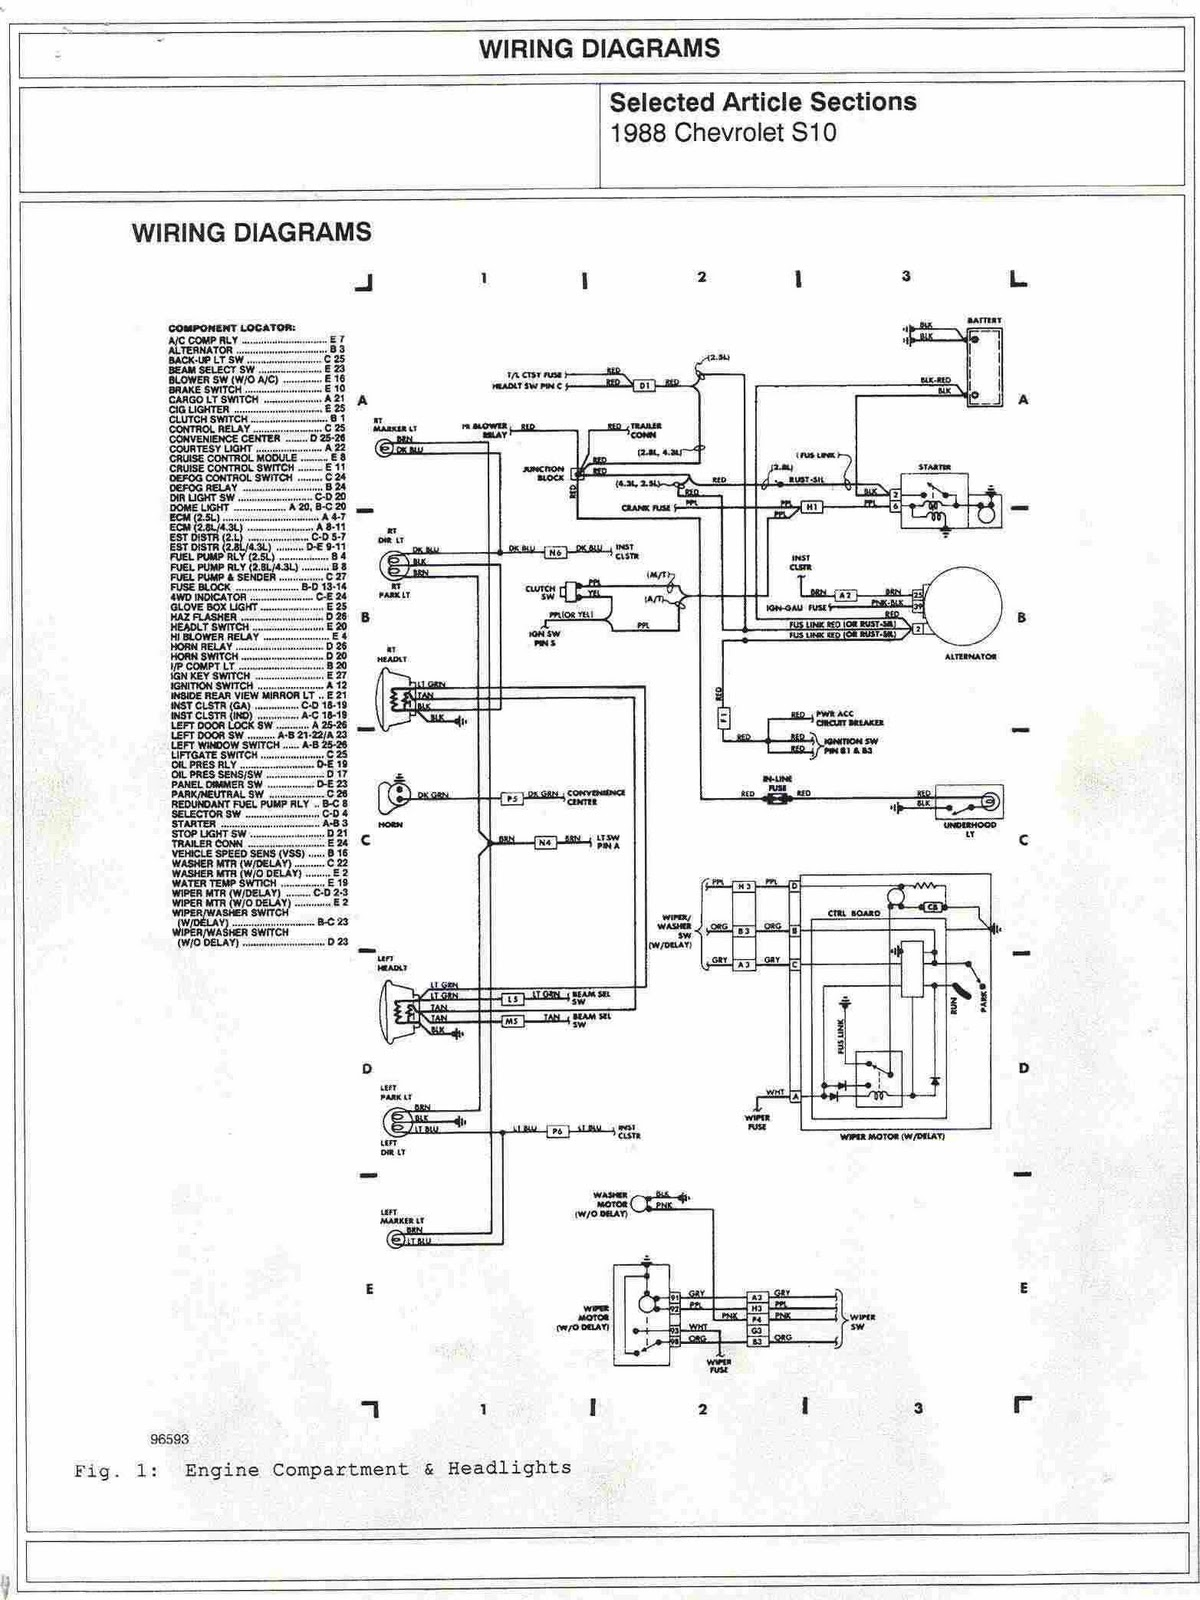 1988+Chevrolet+S10+Engine+Compartment+and+Headlights+Wiring+Diagrams 95 s10 wiring diagram 95 tahoe wiring diagram \u2022 wiring diagrams 2001 Cadillac DeVille at cos-gaming.co